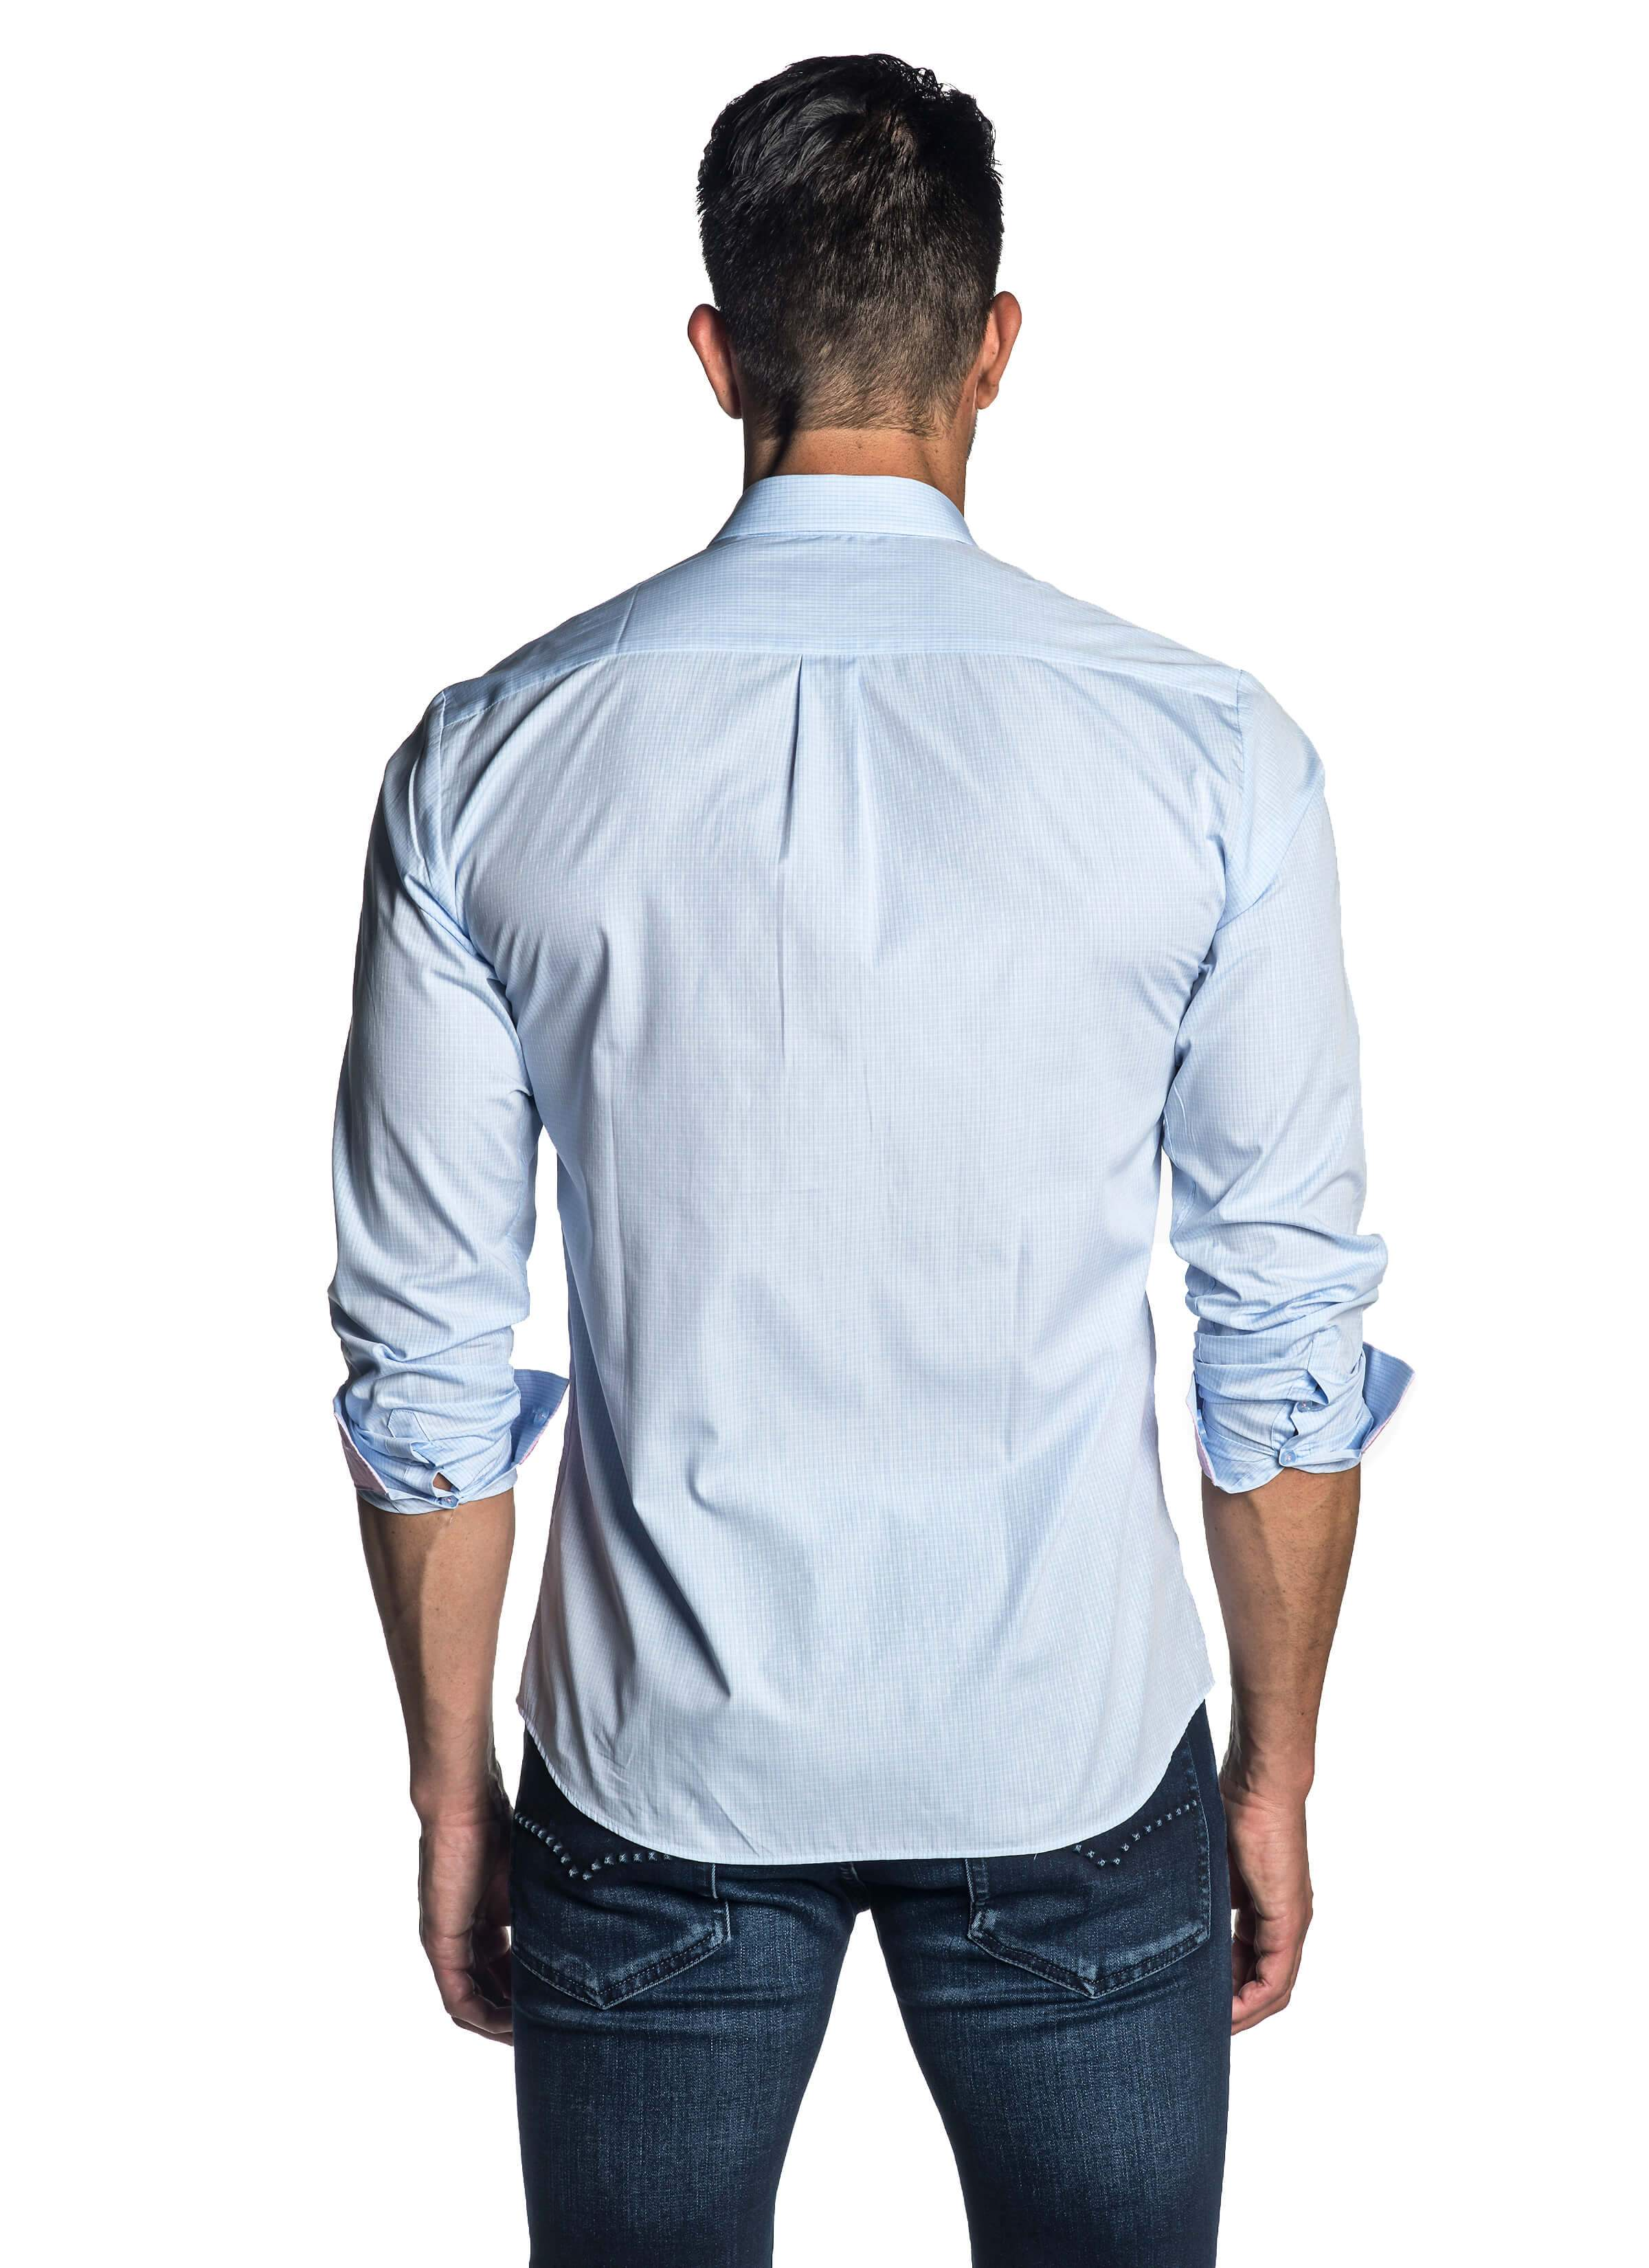 646d476db0d Light Blue Shirt for Men - back AH-C-2007 - Jared Lang